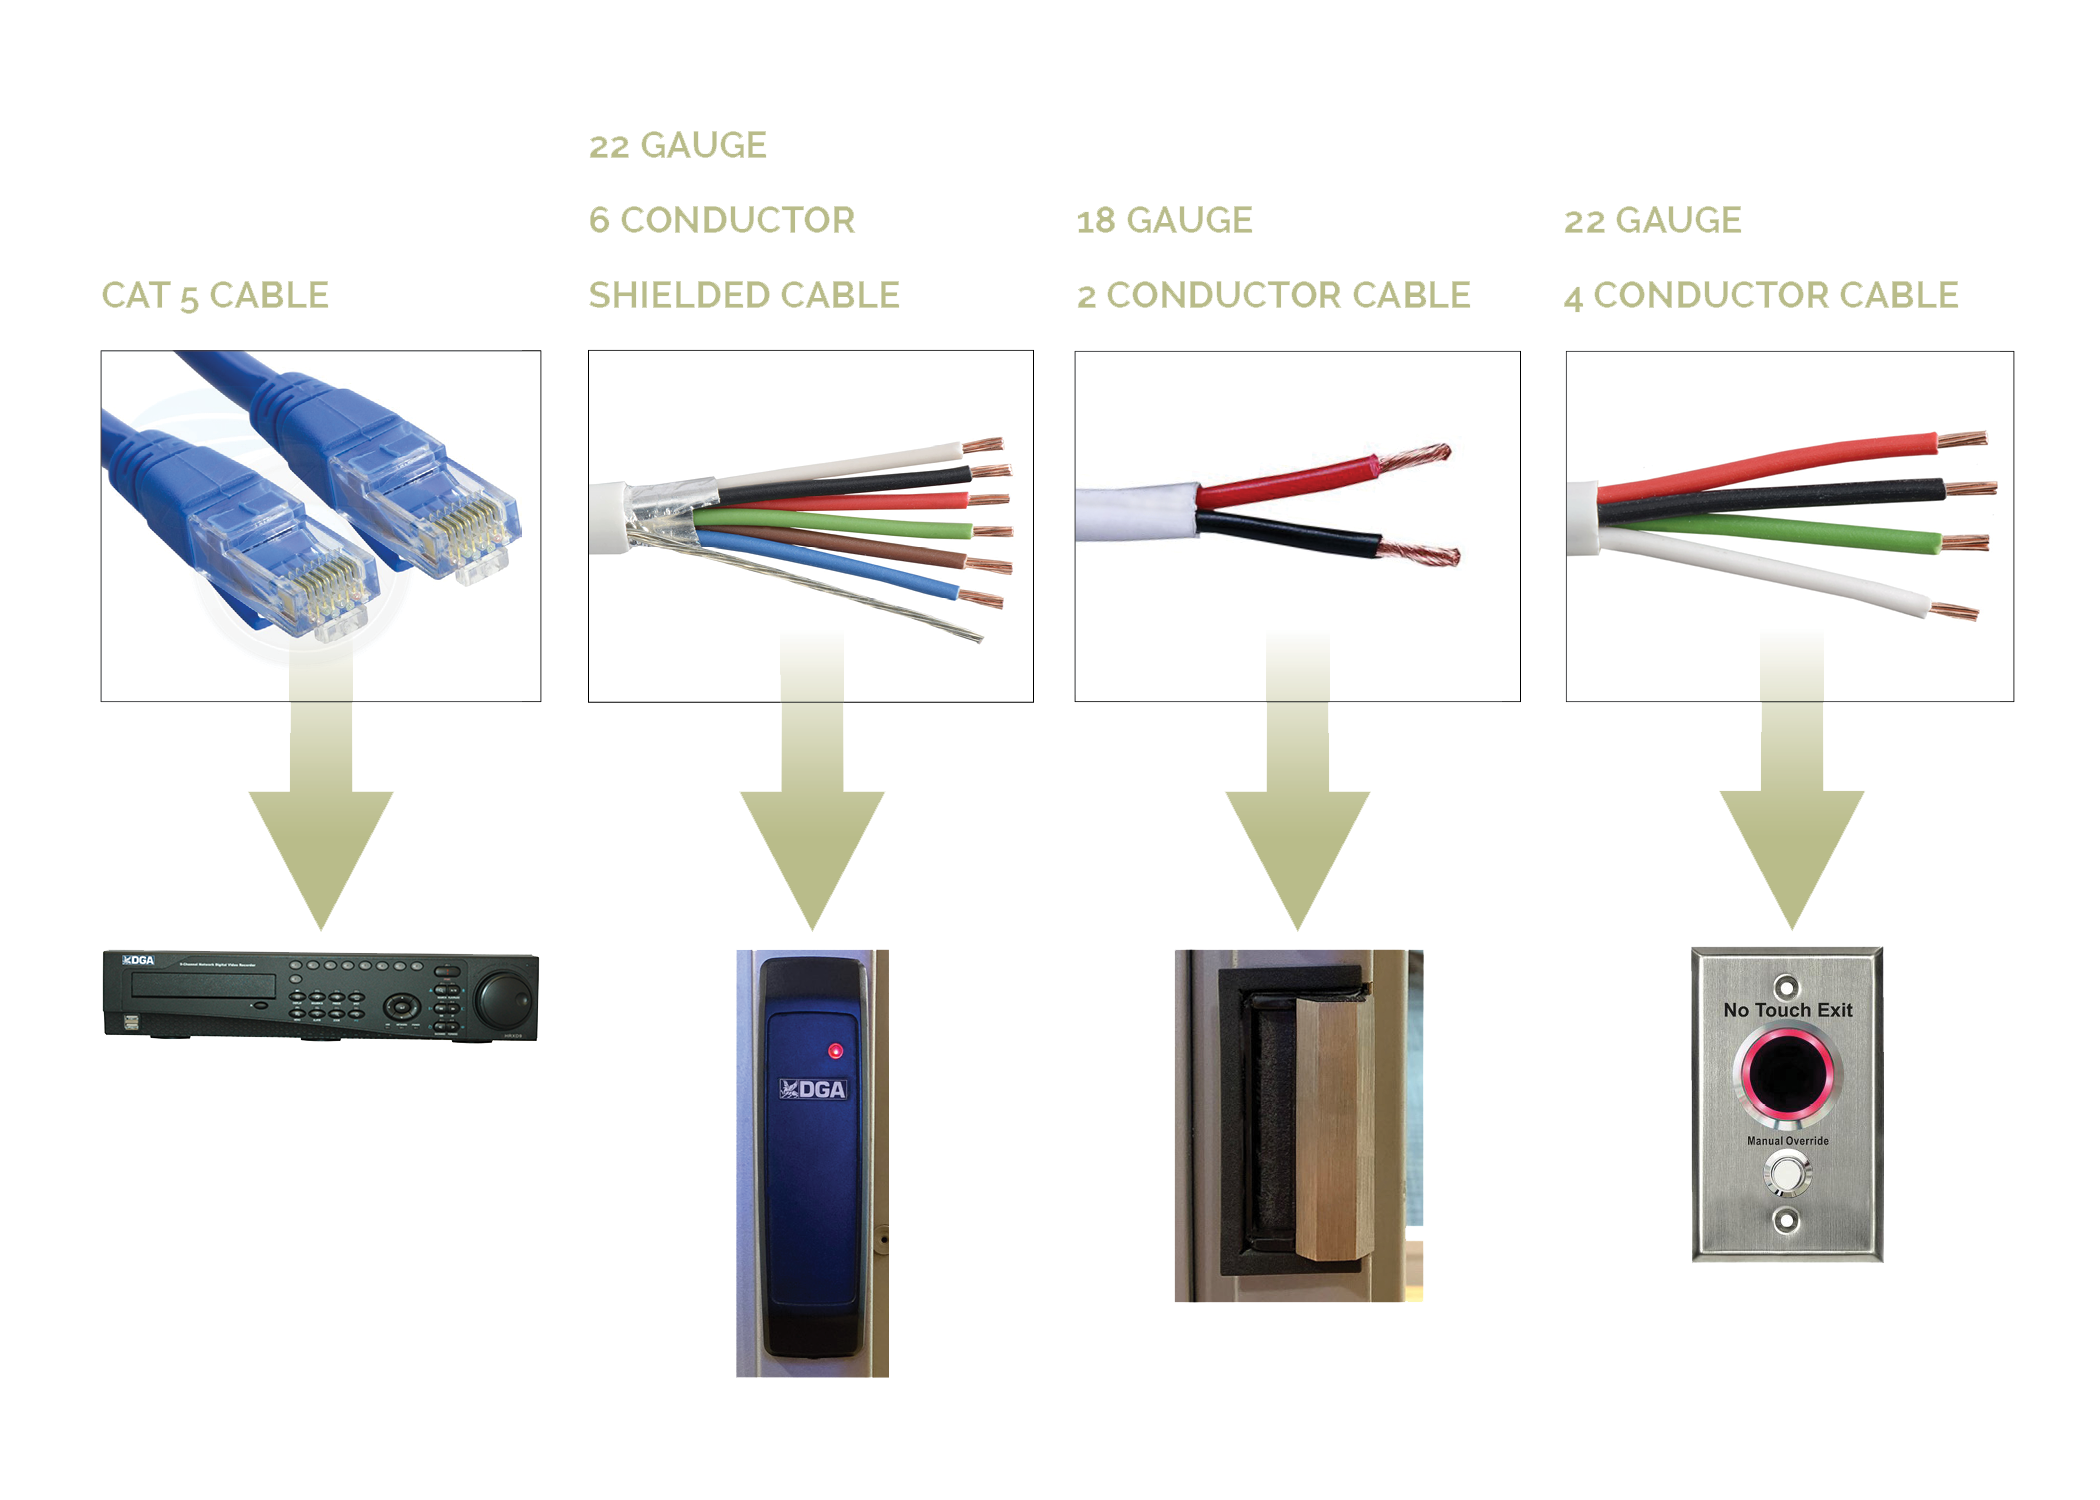 Cable types used in wiring access control systems